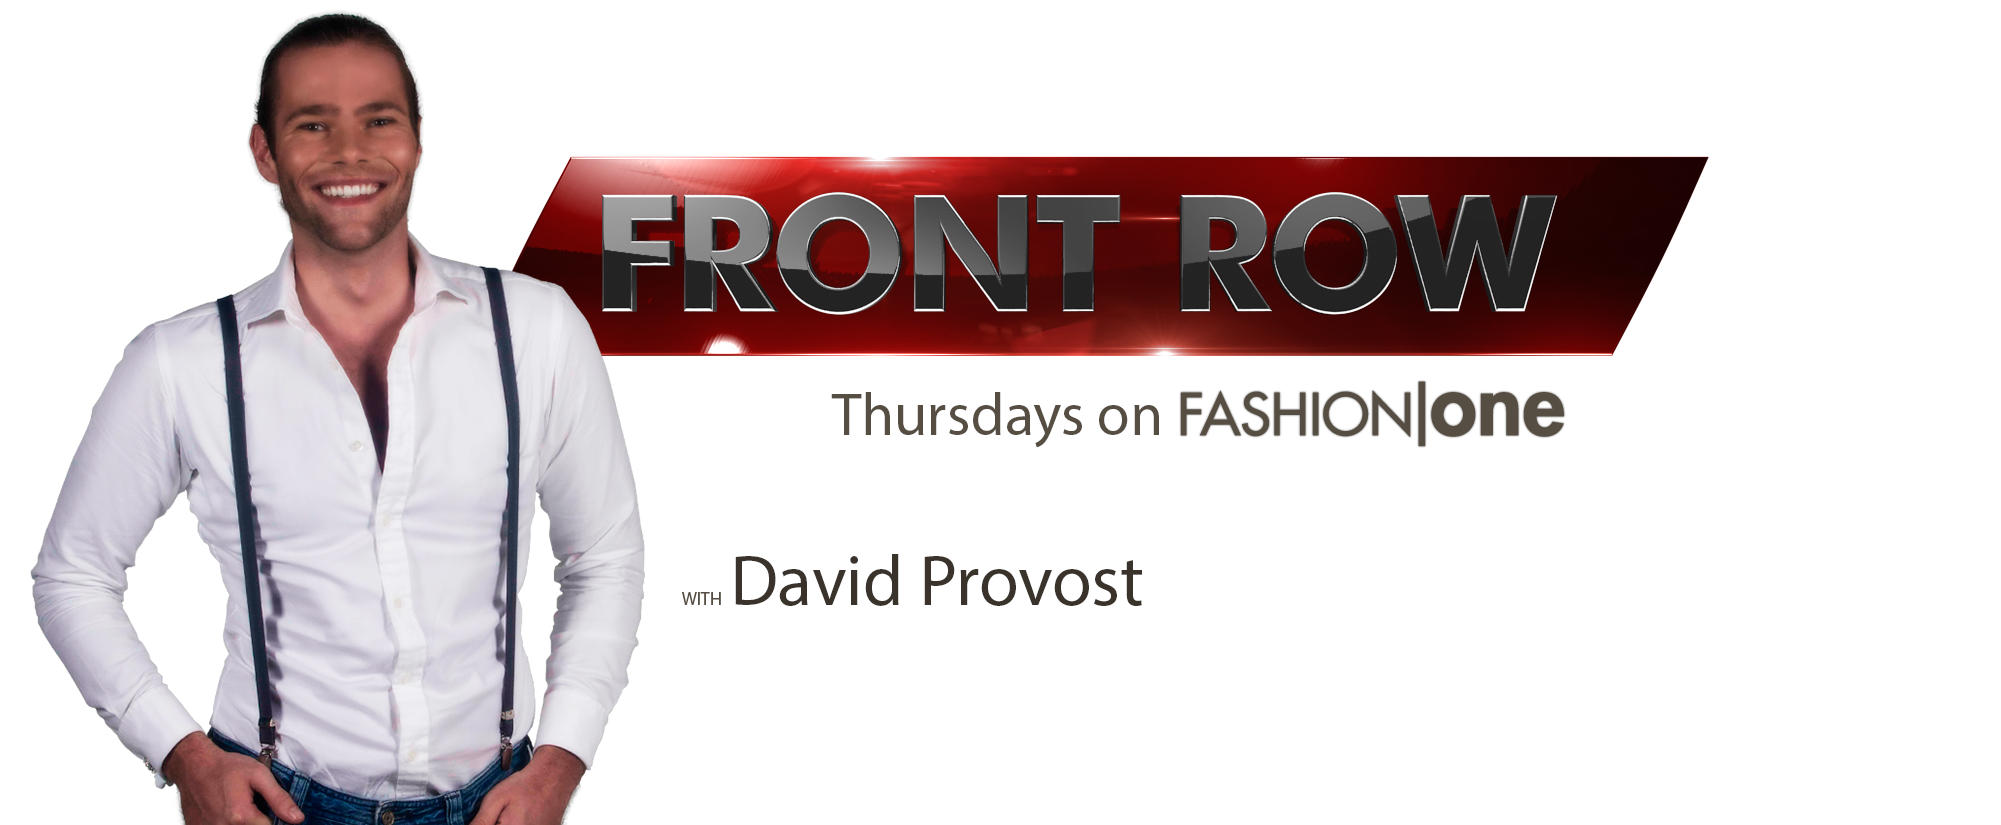 Up Close and Personal with David Provost of Fashion One's Front Row